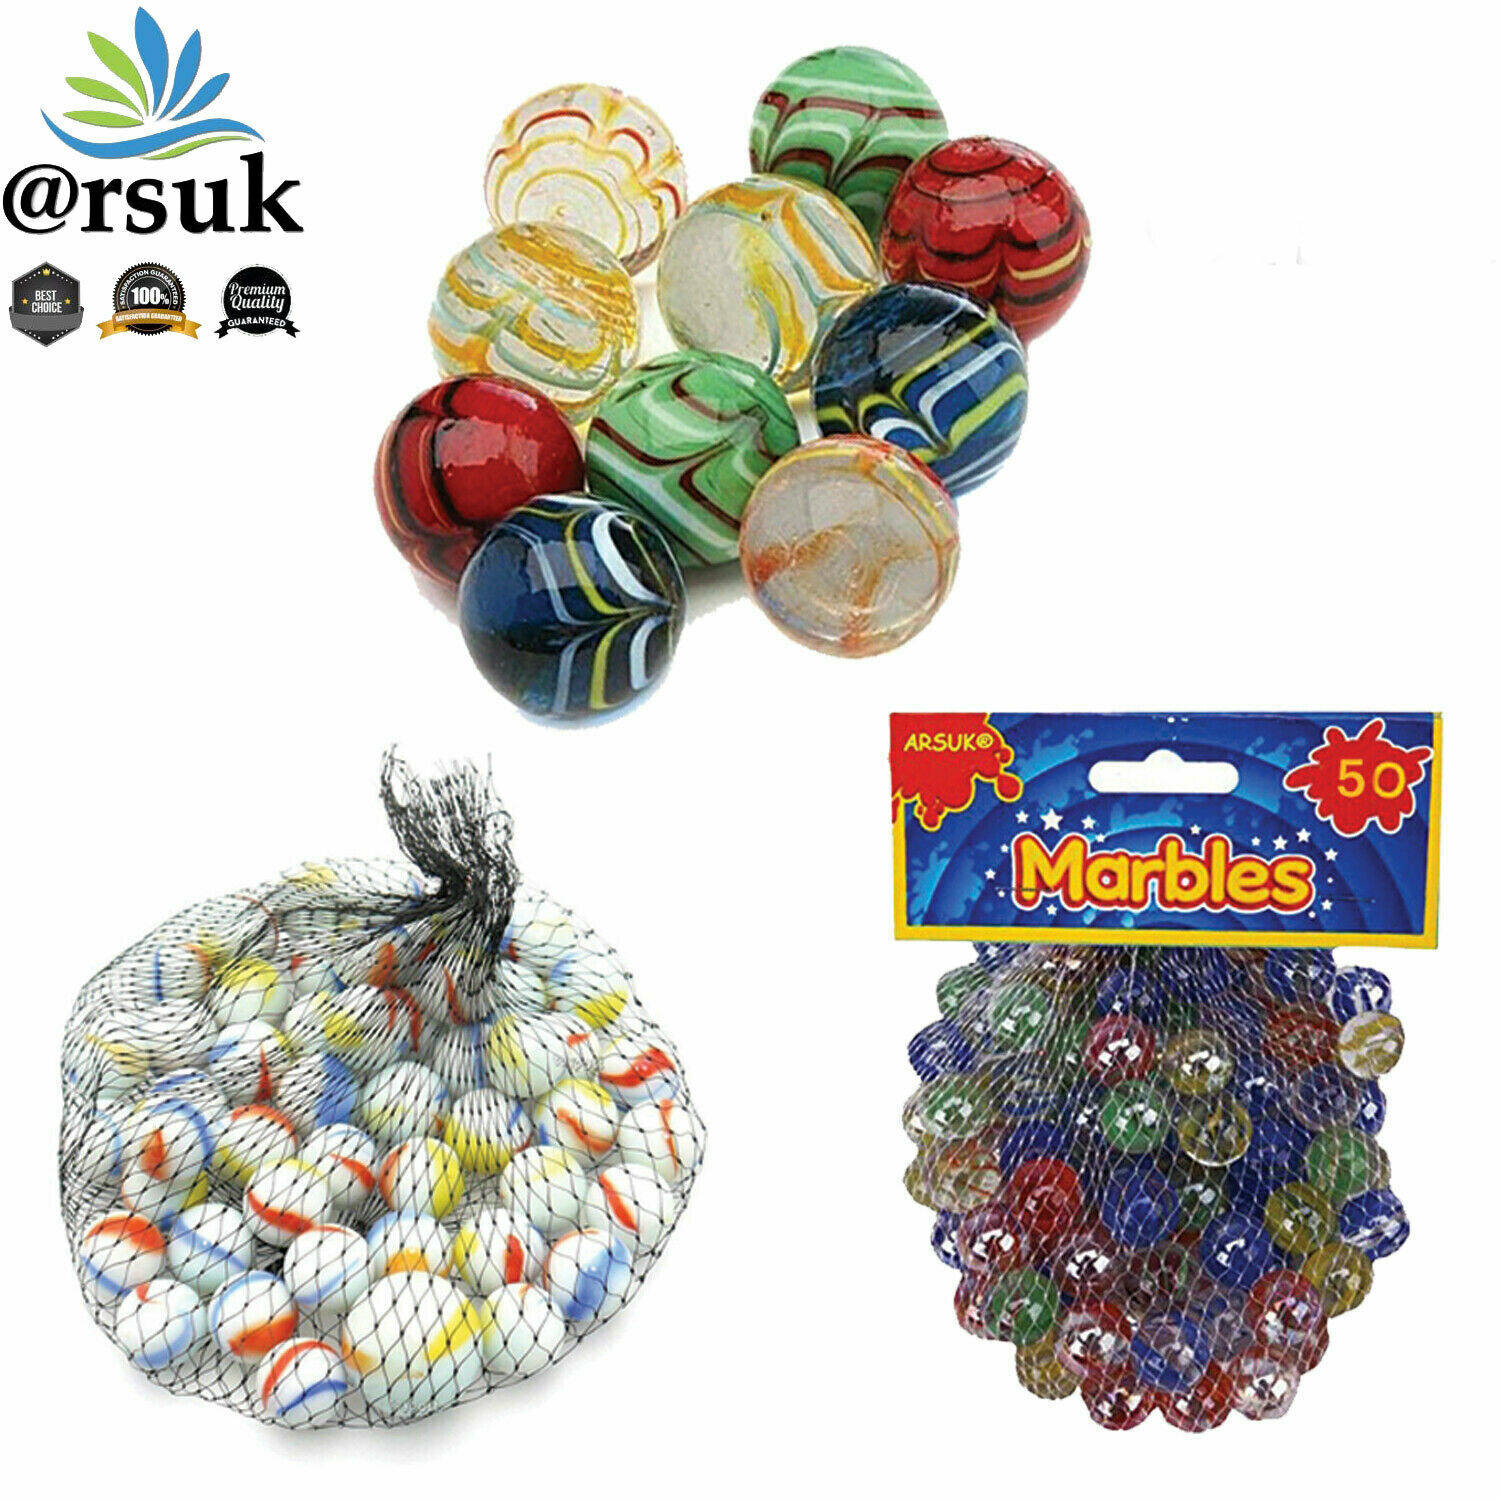 HI-QUALITY MARBLES Kids Glass Toys Traditional Games Retro VINTAGE CLASSIC GAME